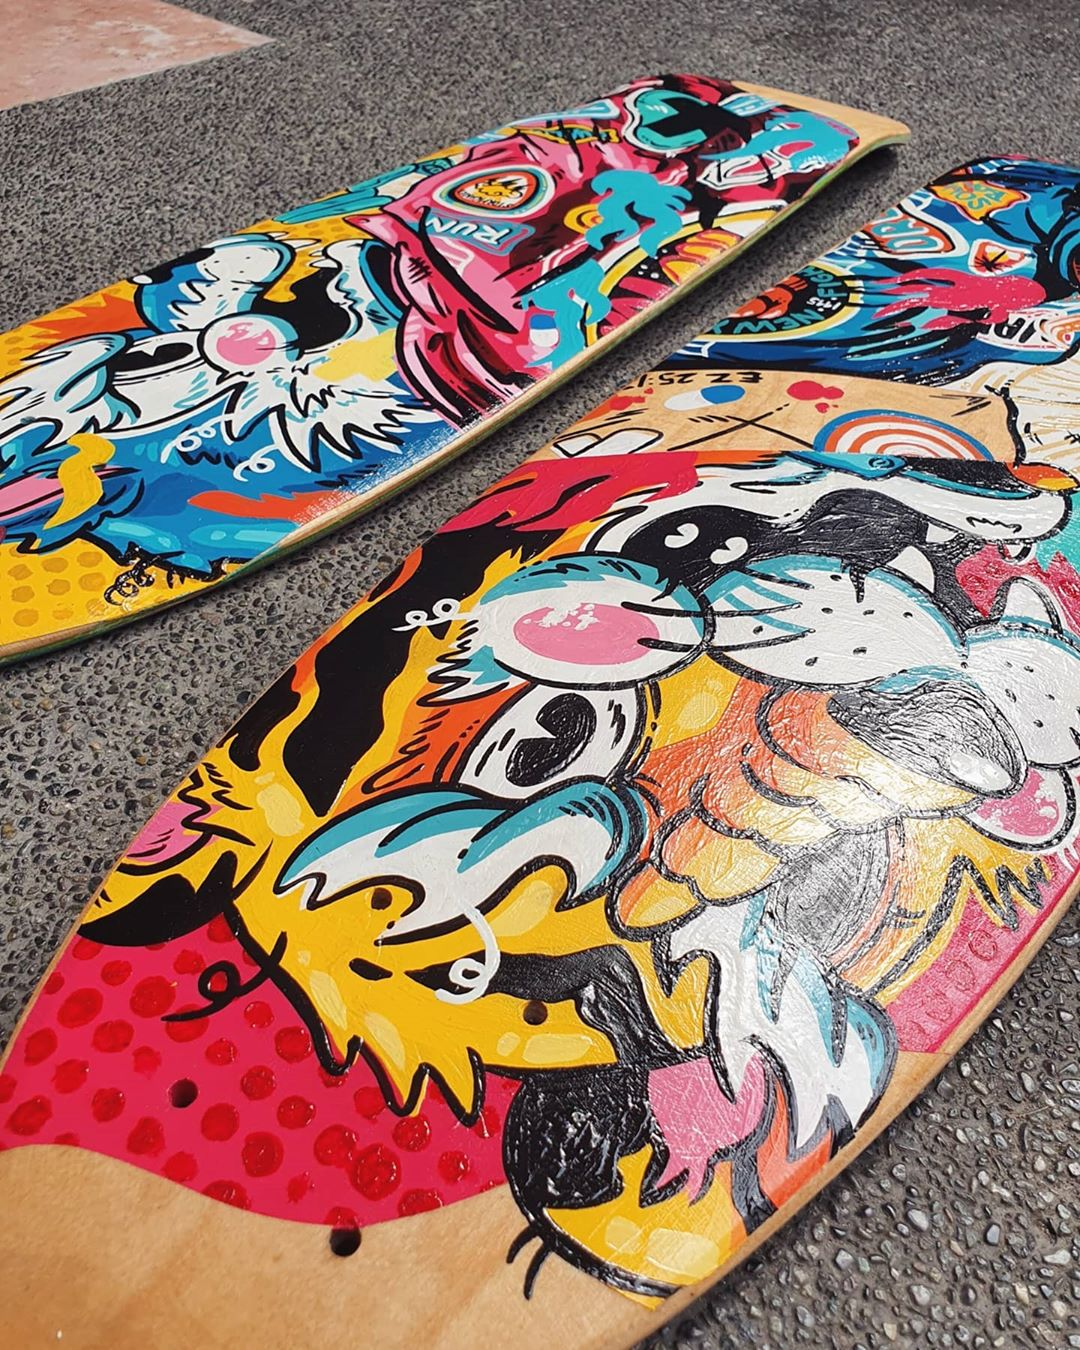 Custom Skateboards By Jappy Agoncillo 5.jpg